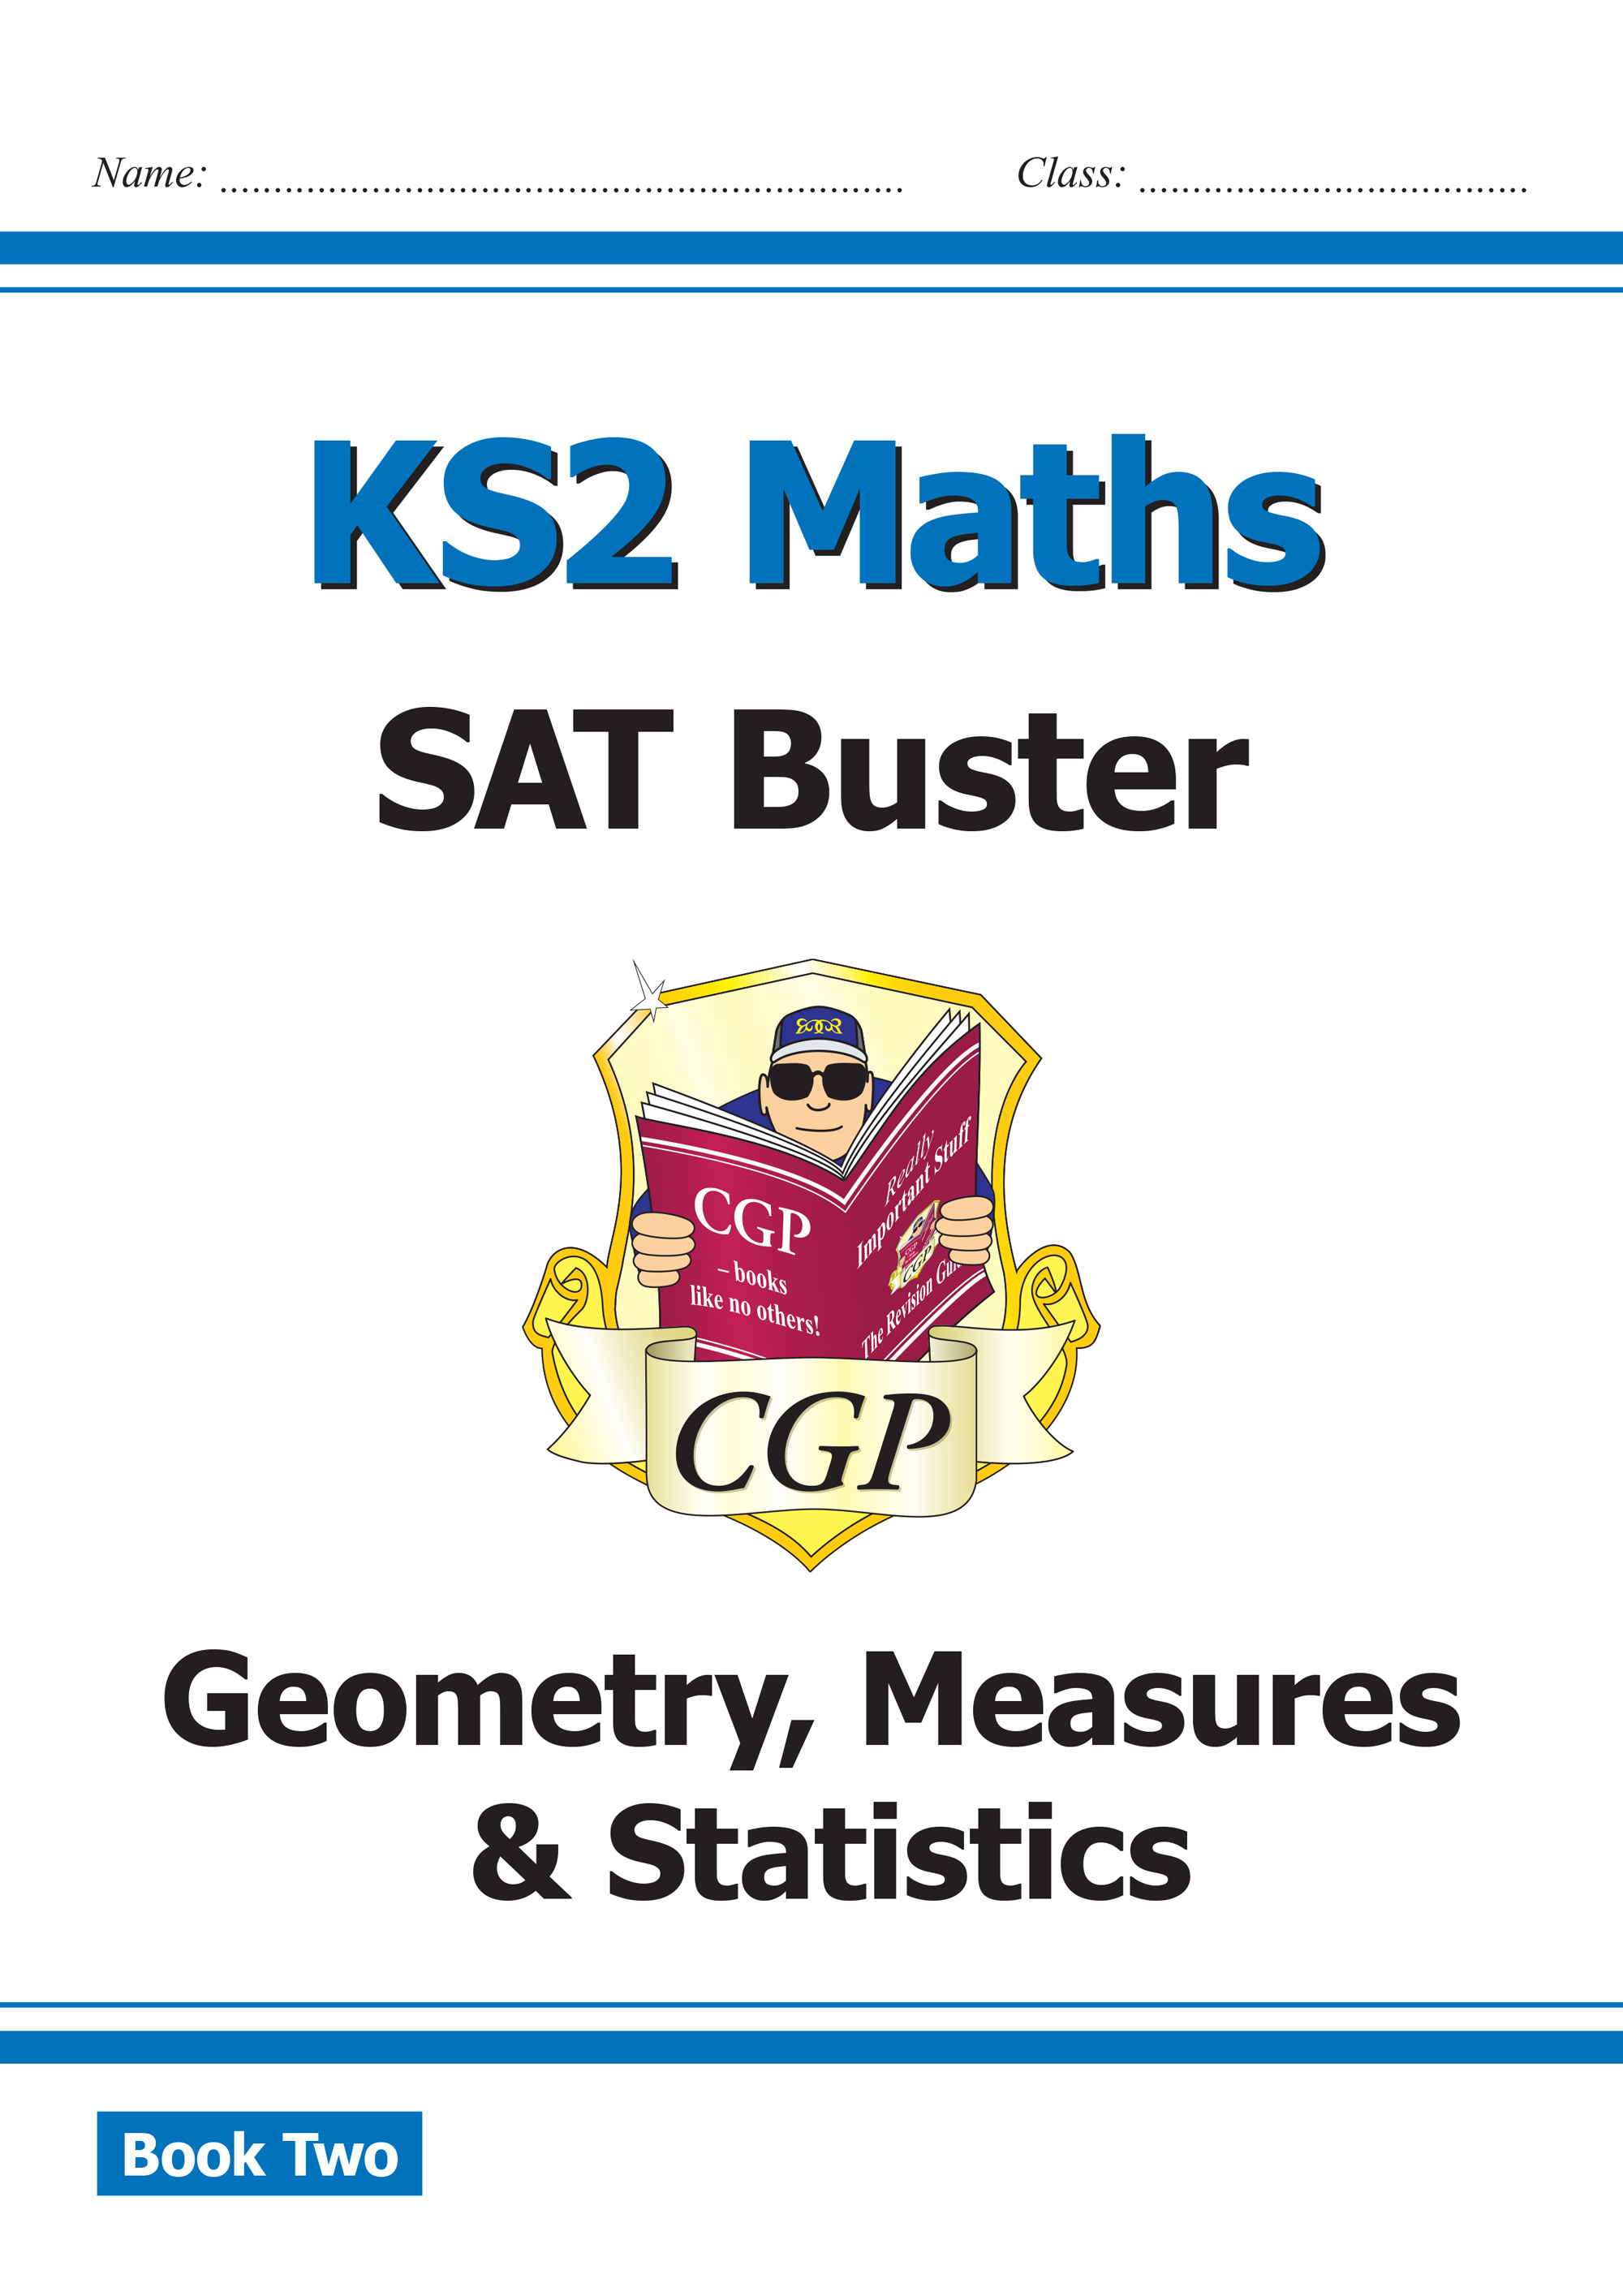 M6SMD221 - New KS2 Maths SAT Buster: Geometry, Measures & Statistics Book 2 (for the 2019 tests)